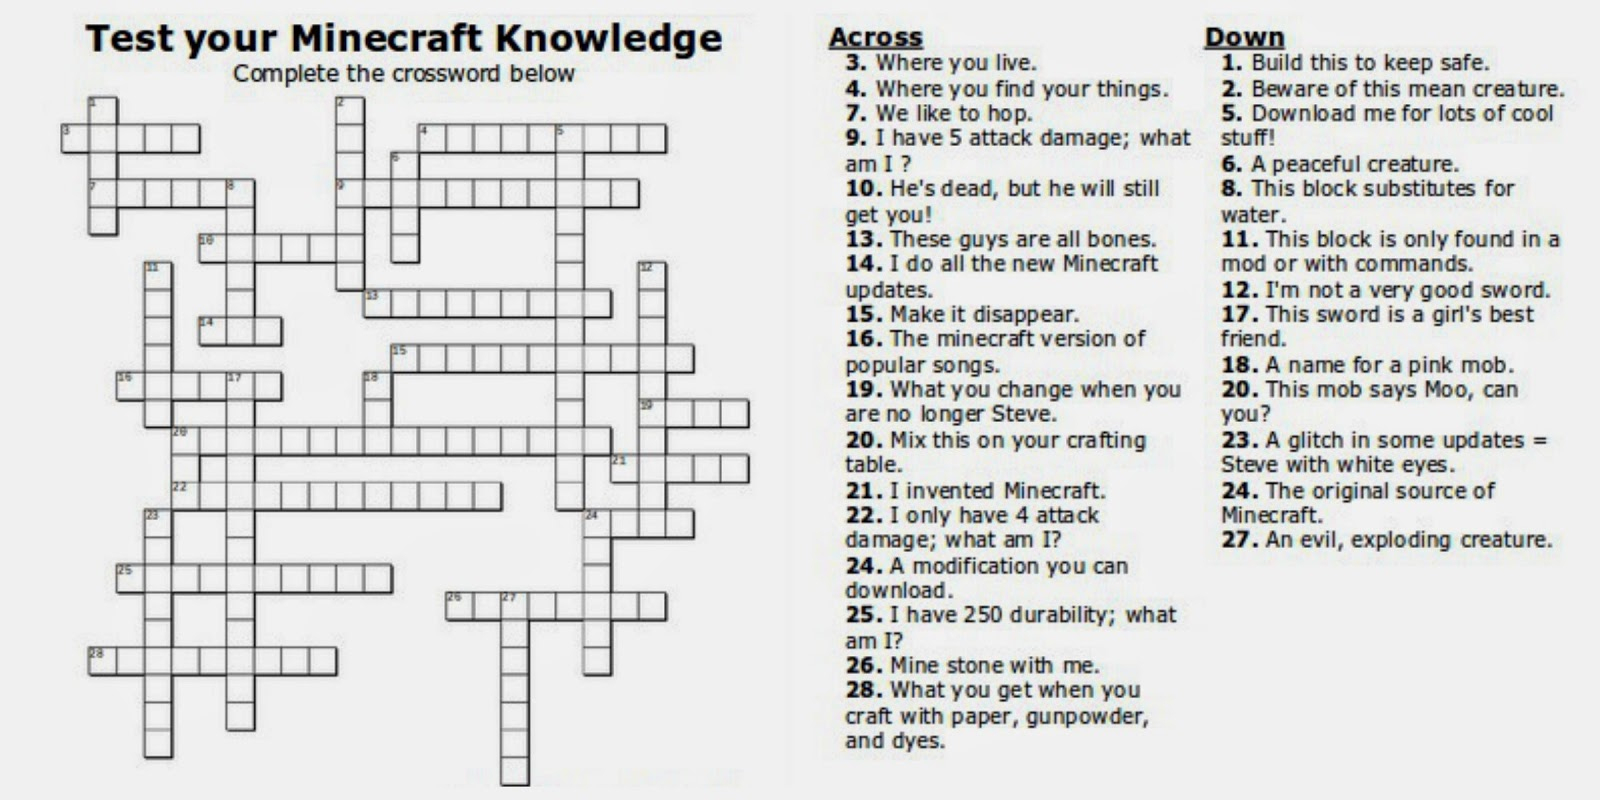 Free Printable Minecraft Crossword Search: Test Your Minecraft - Printable Crossword Search